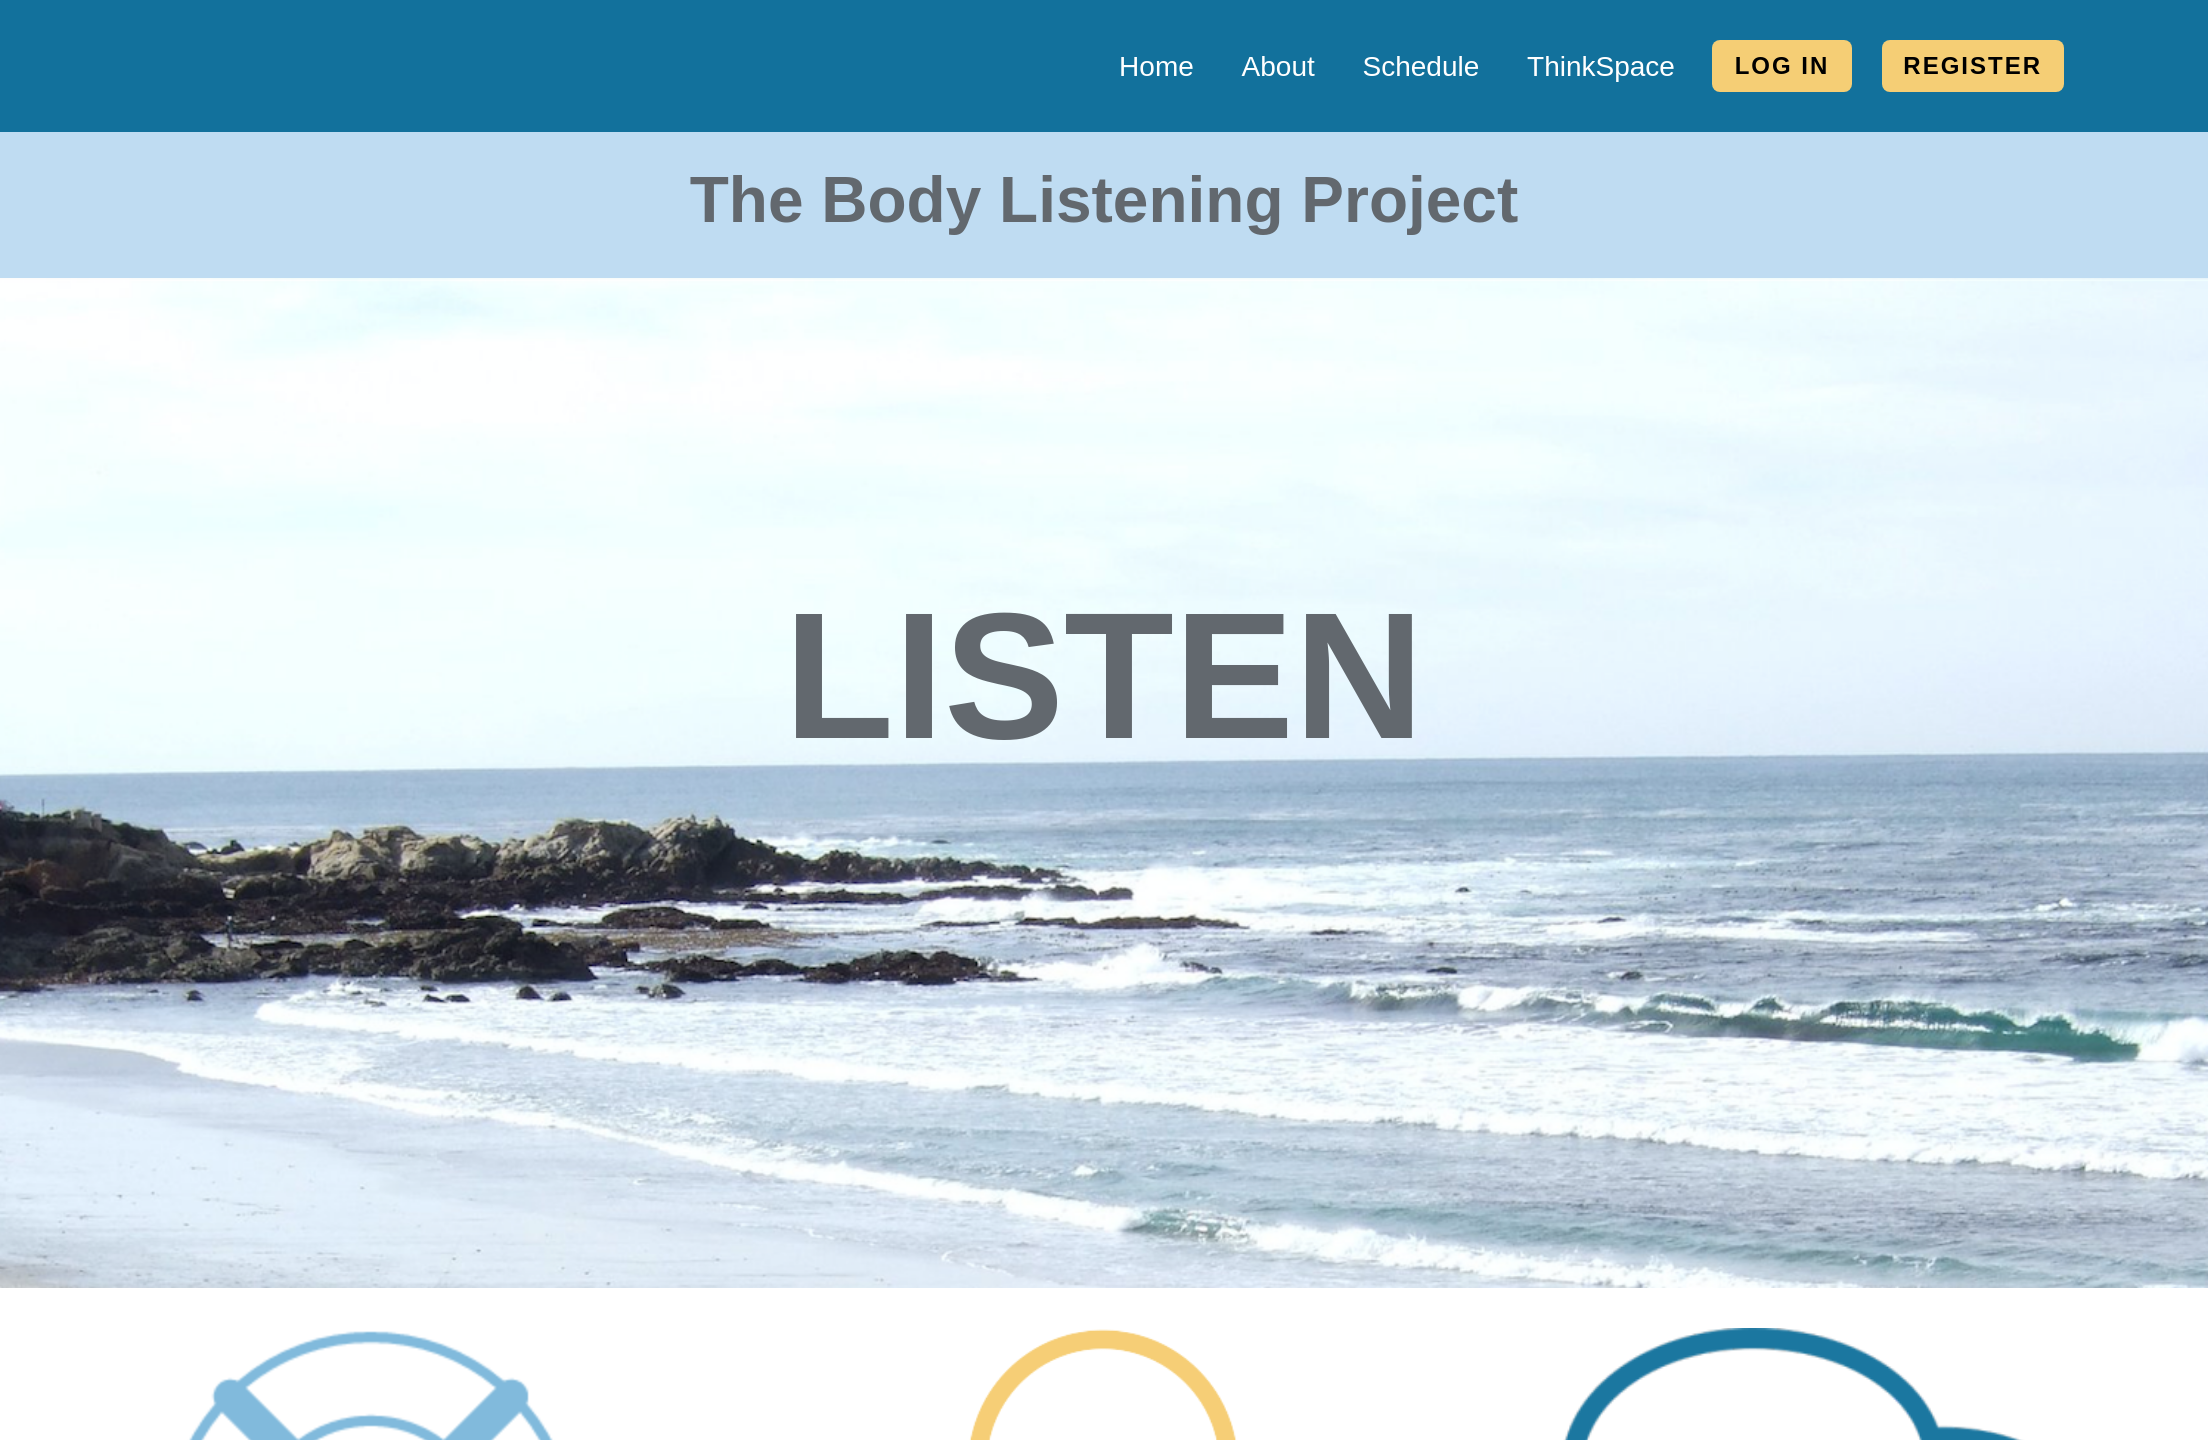 Body Listening Project website screenshot